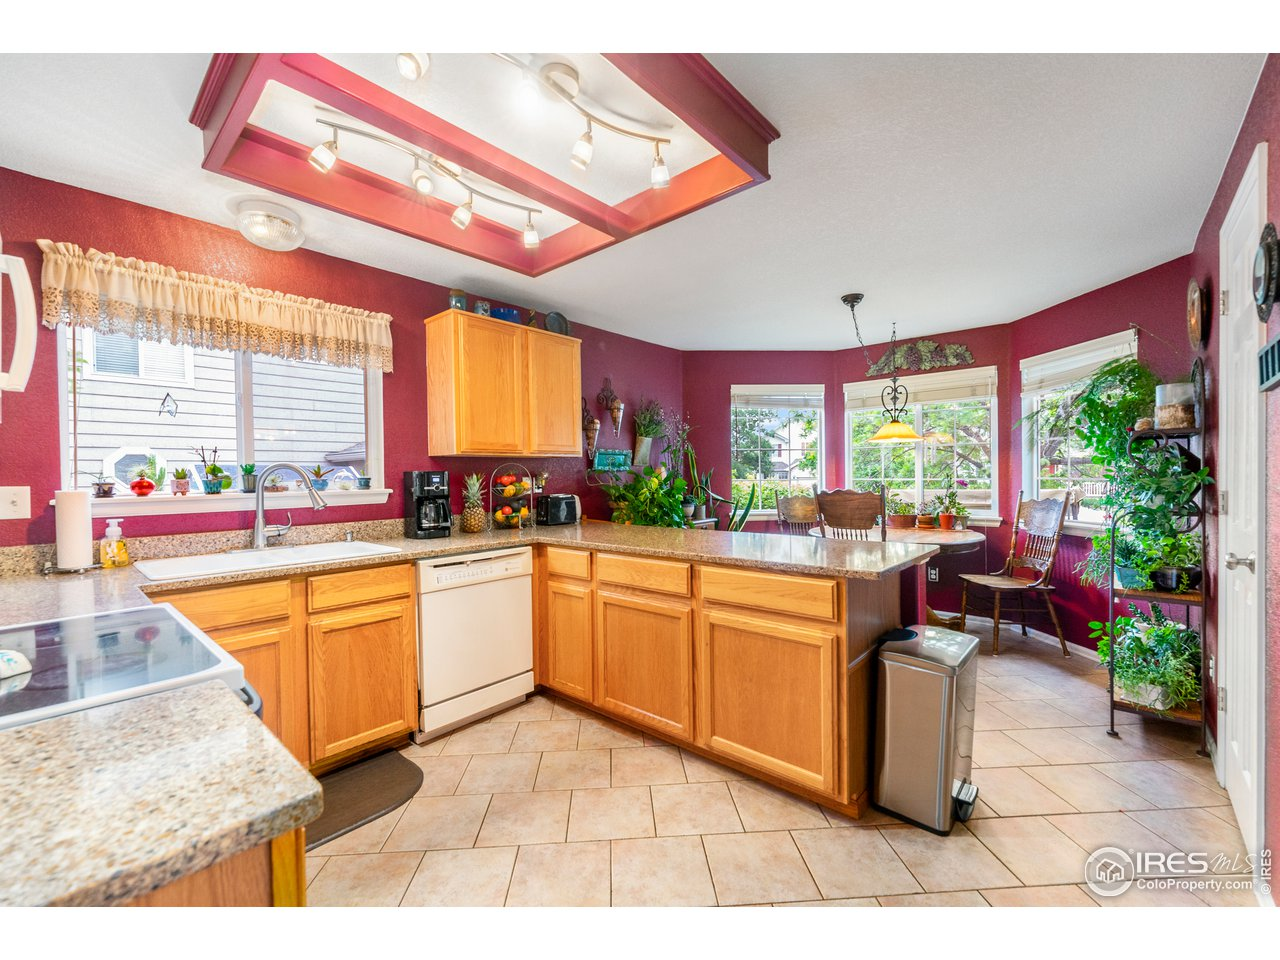 Lots of counterspace in kitchen